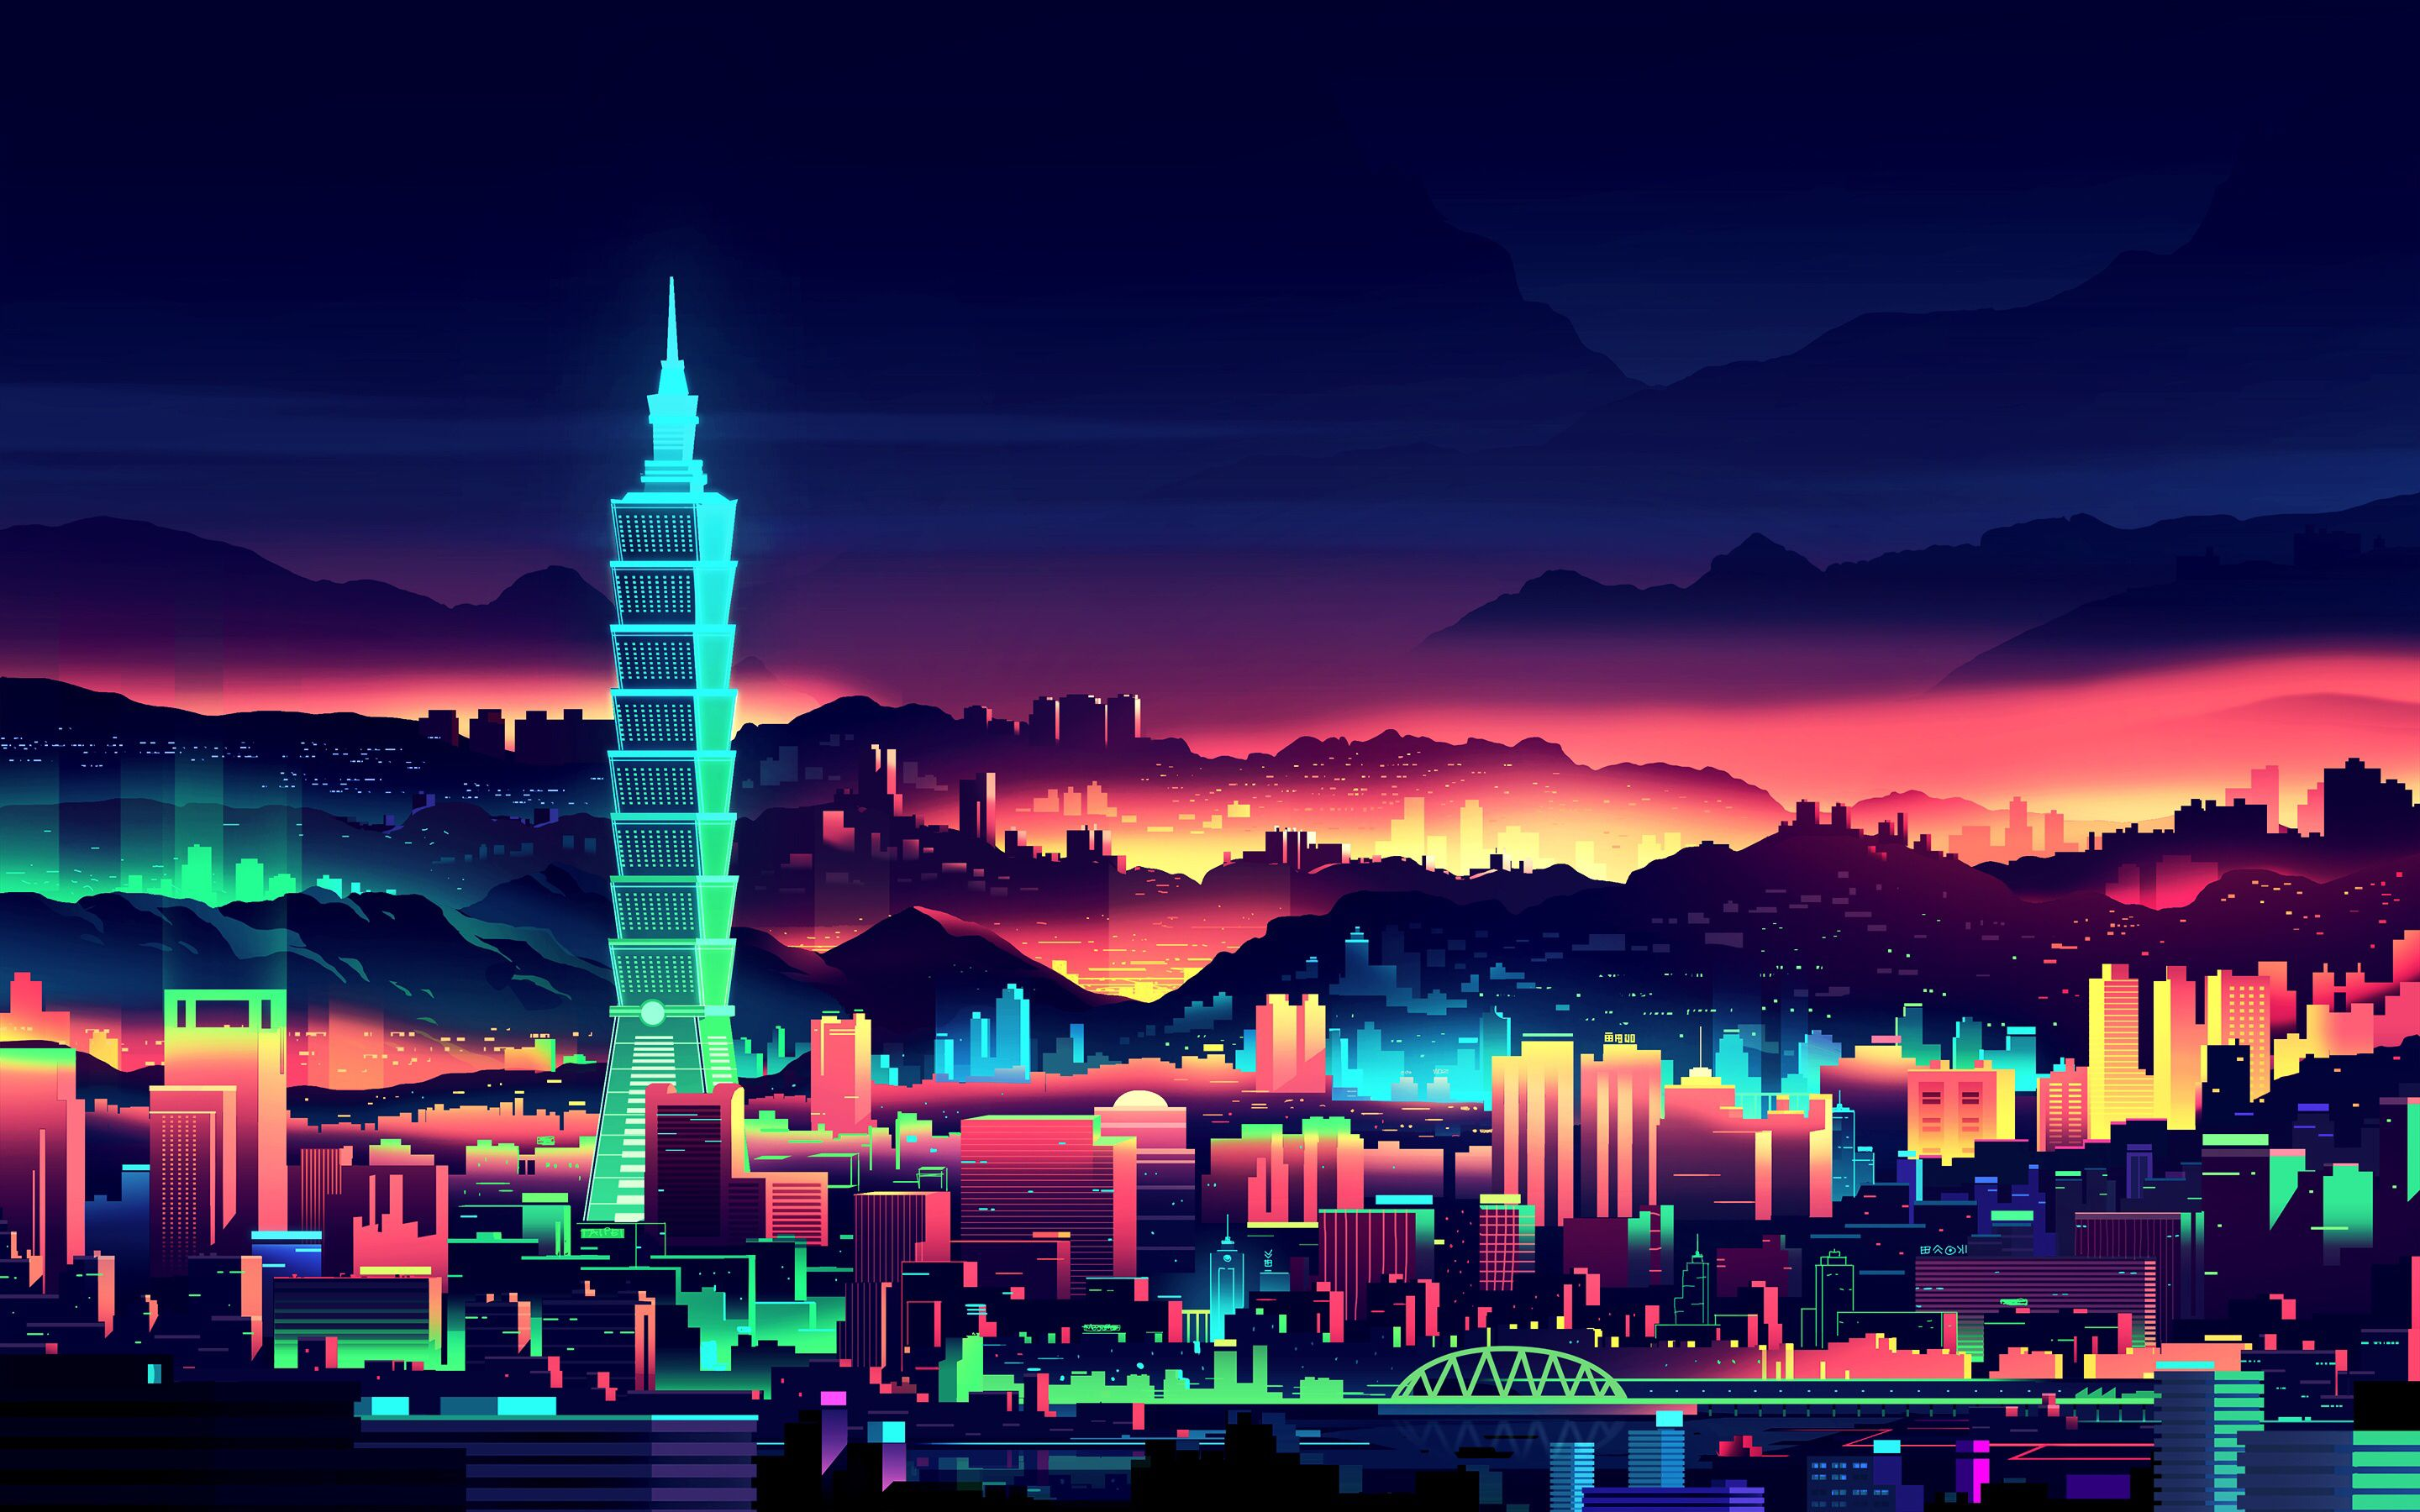 Found a Cool Cyberpunk Wallpaper on /r/wallpapers | Cyberpunk em 2019 | Neon wallpaper ...